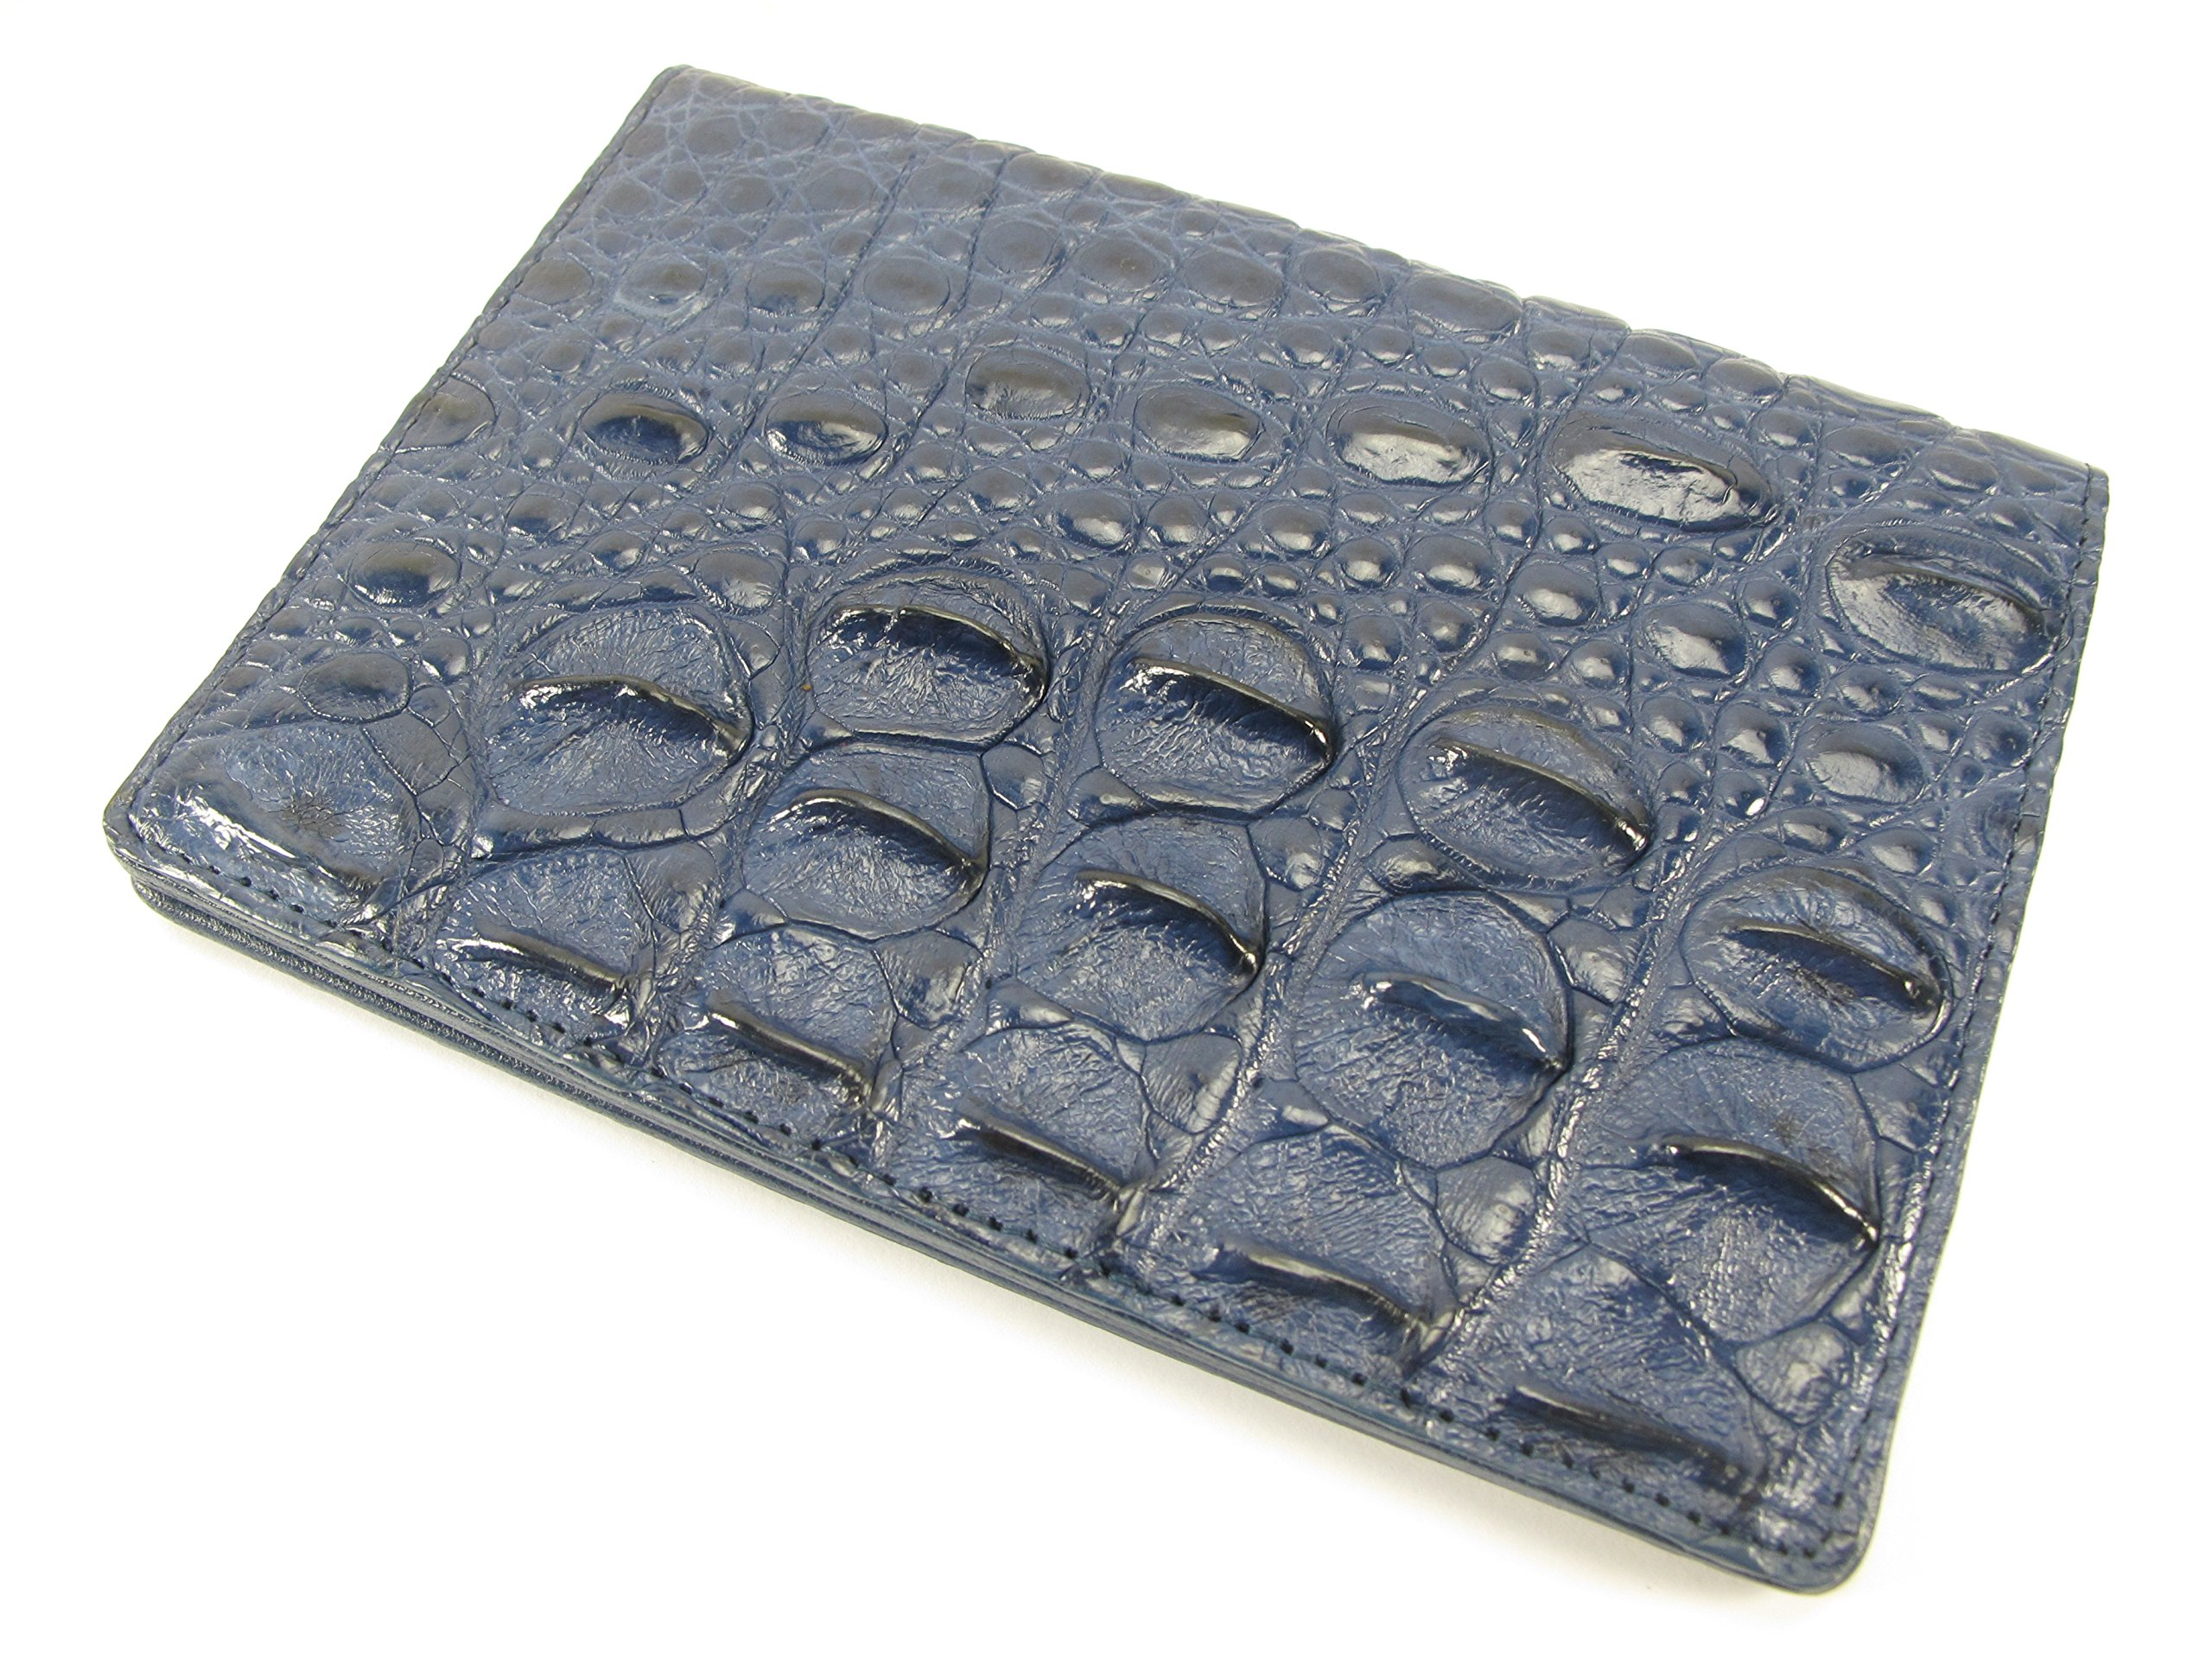 PELGIO Genuine Crocodile Alligator Skin Leather Passport Holder Wallet Blue